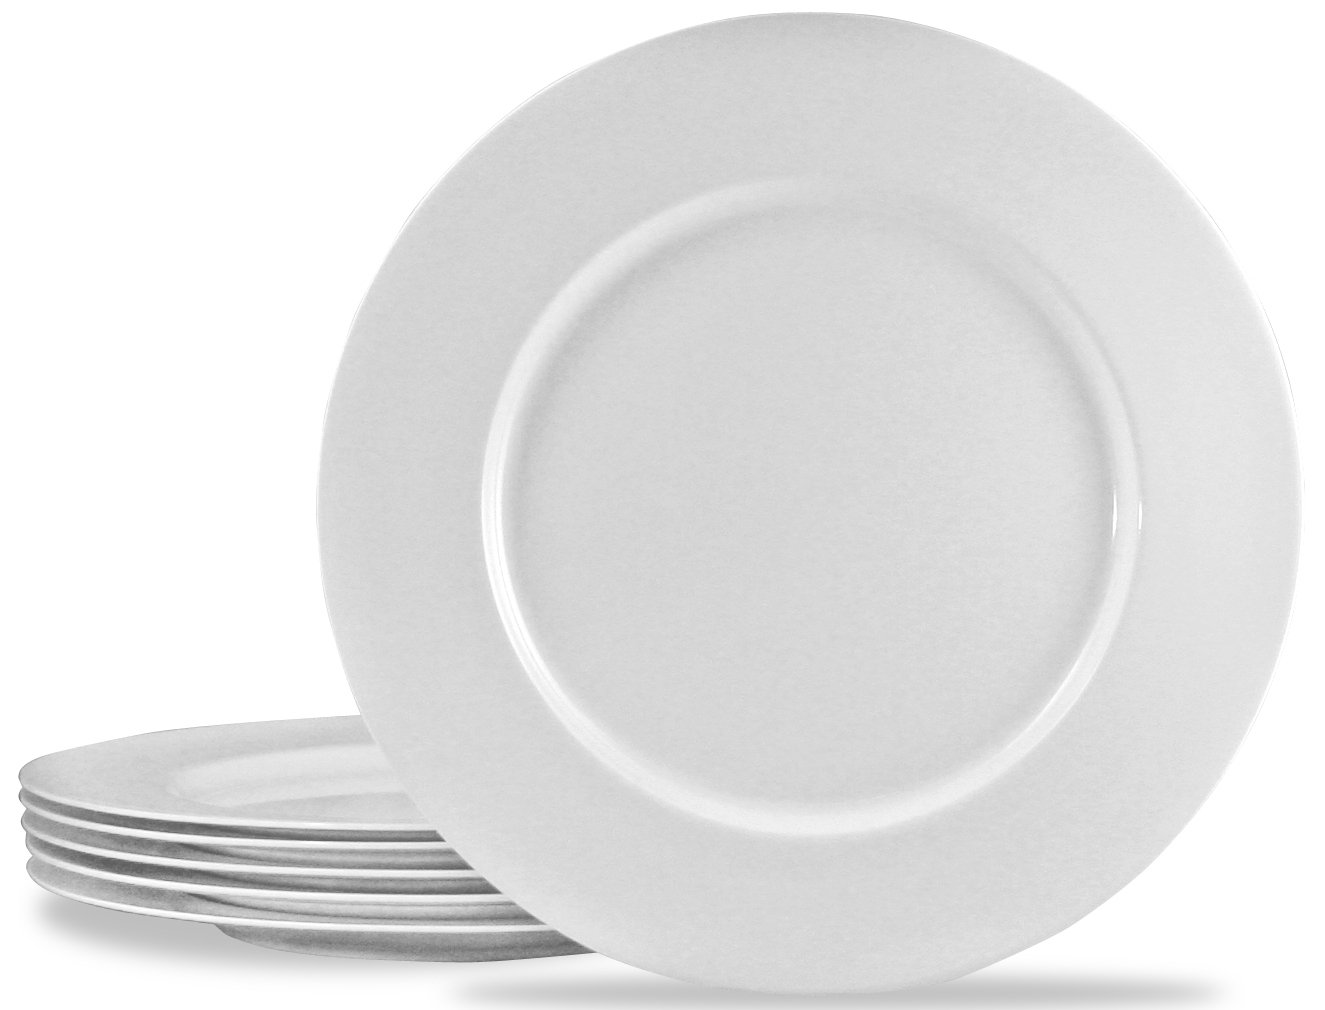 Amazon.com | Calypso Basics by Reston Lloyd Melamine Dinner Plate Set of 6 White Plastic Plates Dinner Plates  sc 1 st  Amazon.com & Amazon.com | Calypso Basics by Reston Lloyd Melamine Dinner Plate ...